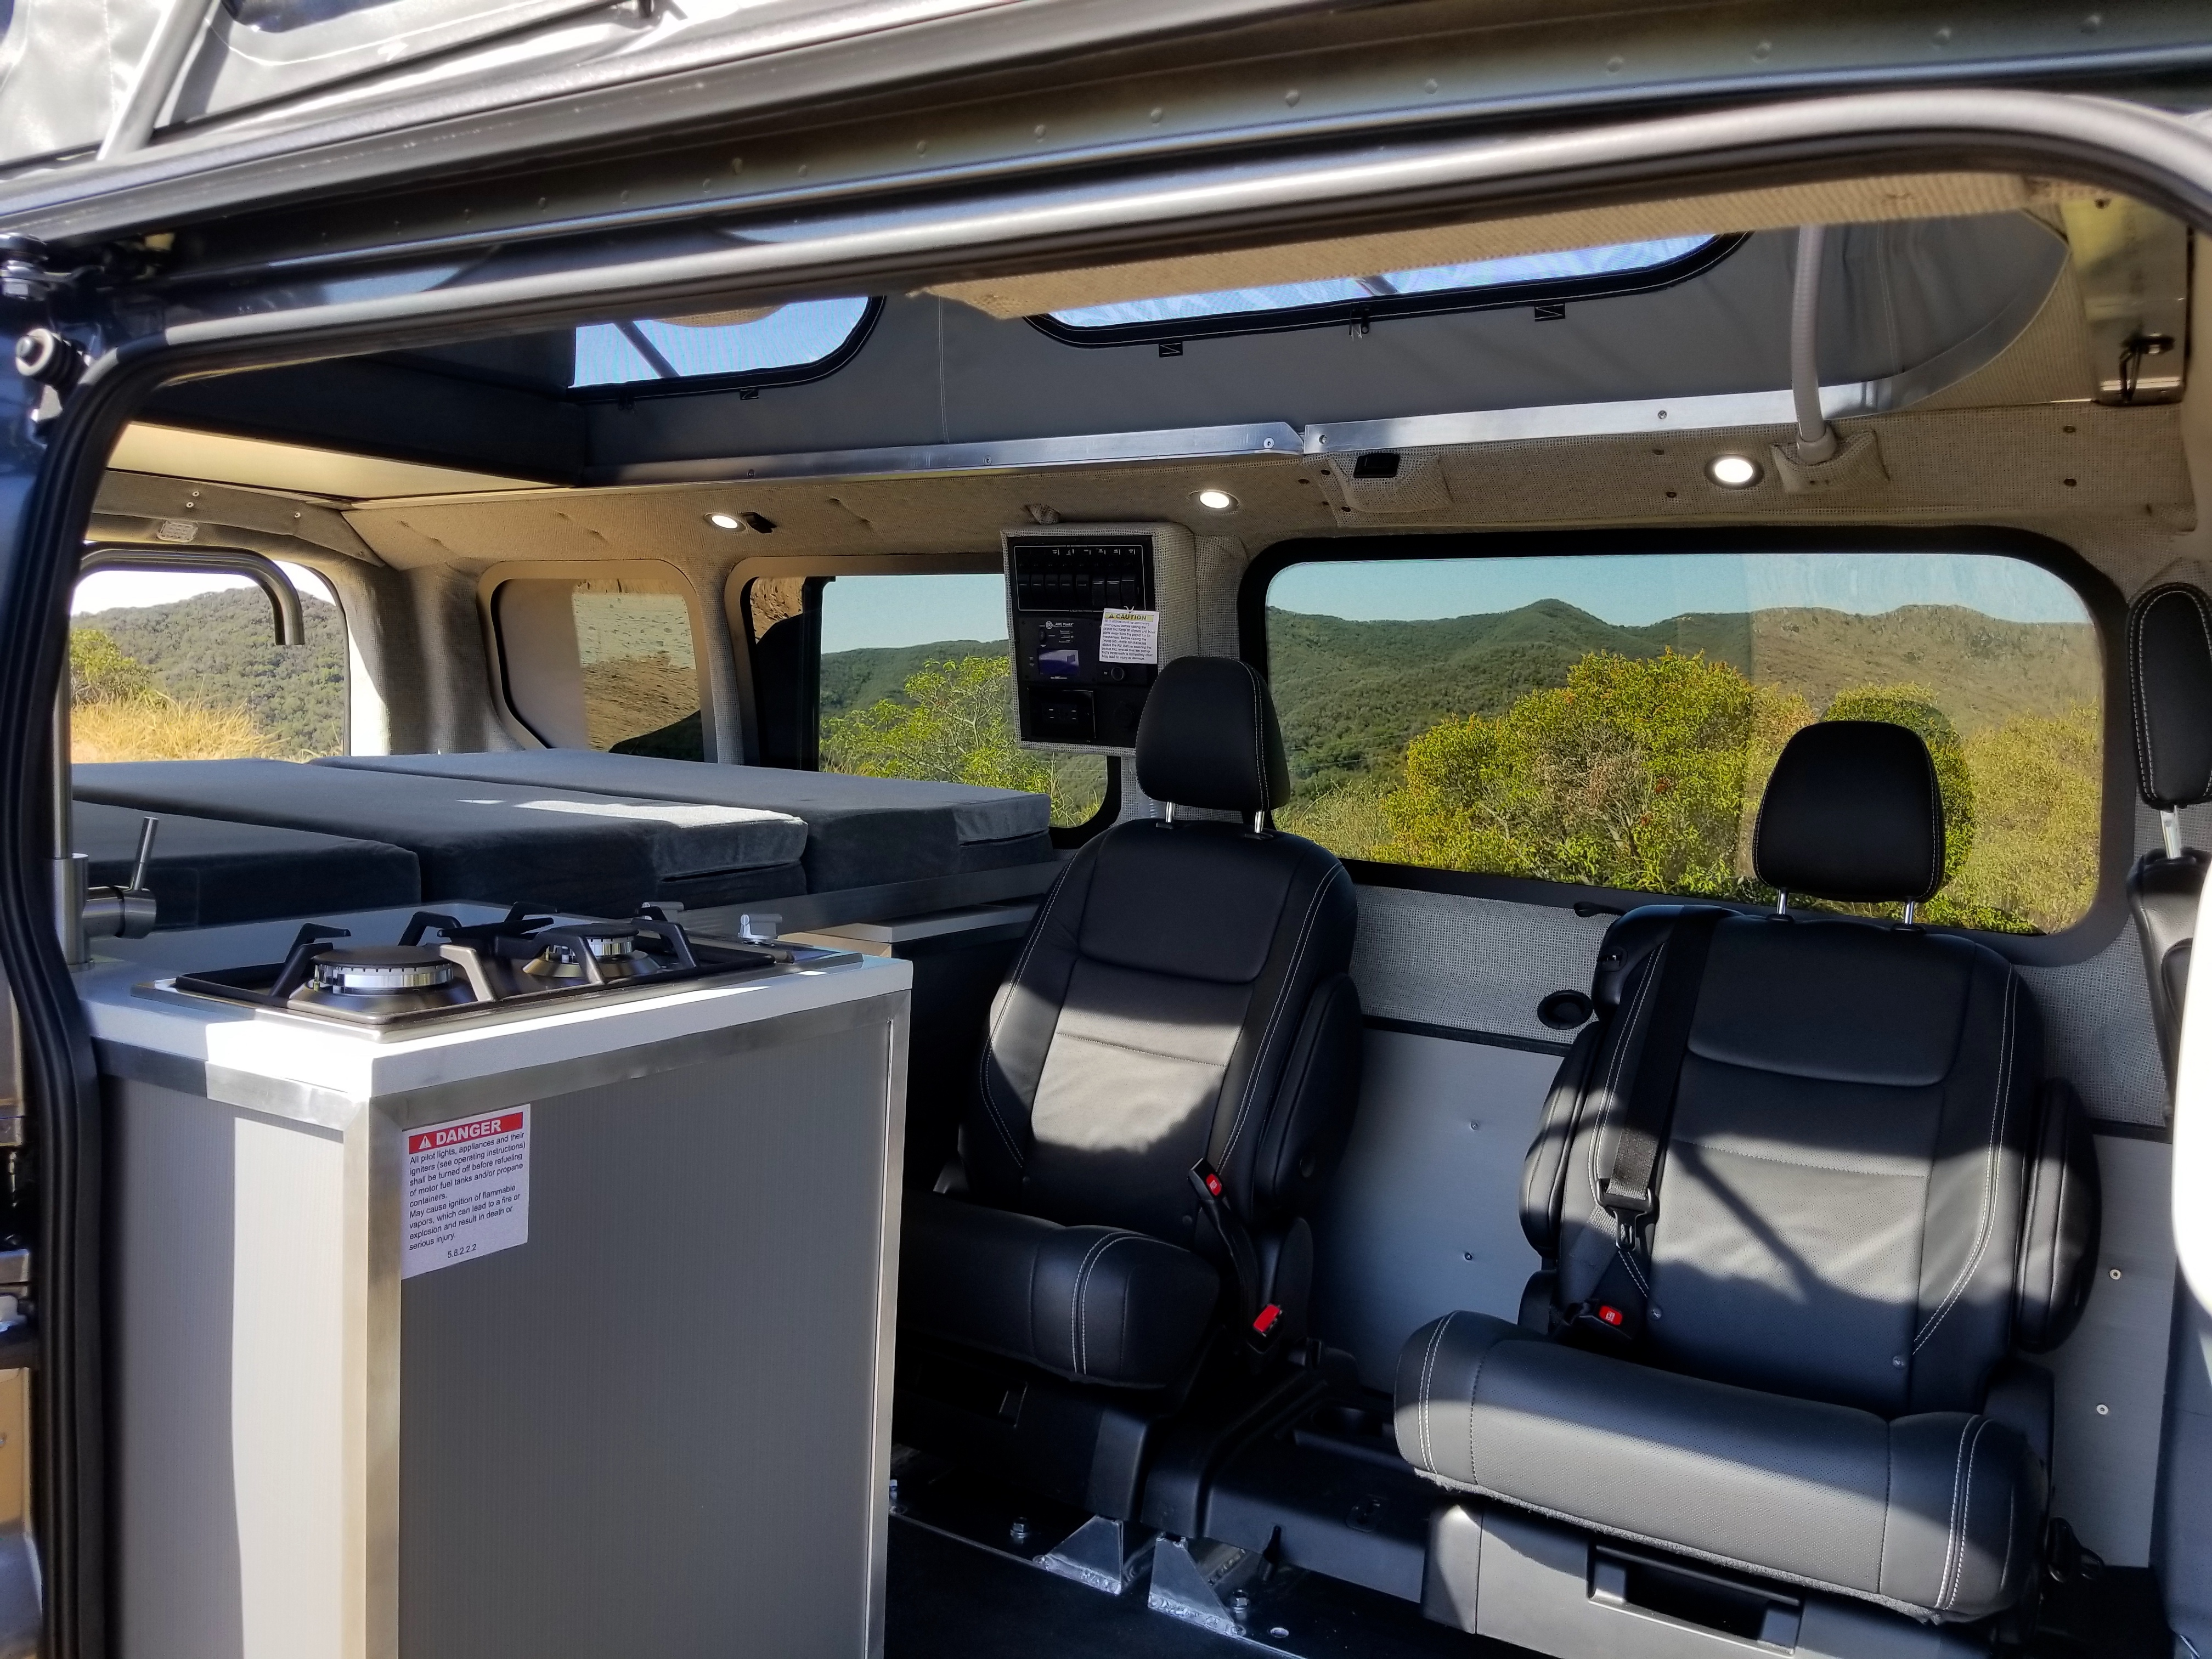 Camper van with removable components can sleep a family